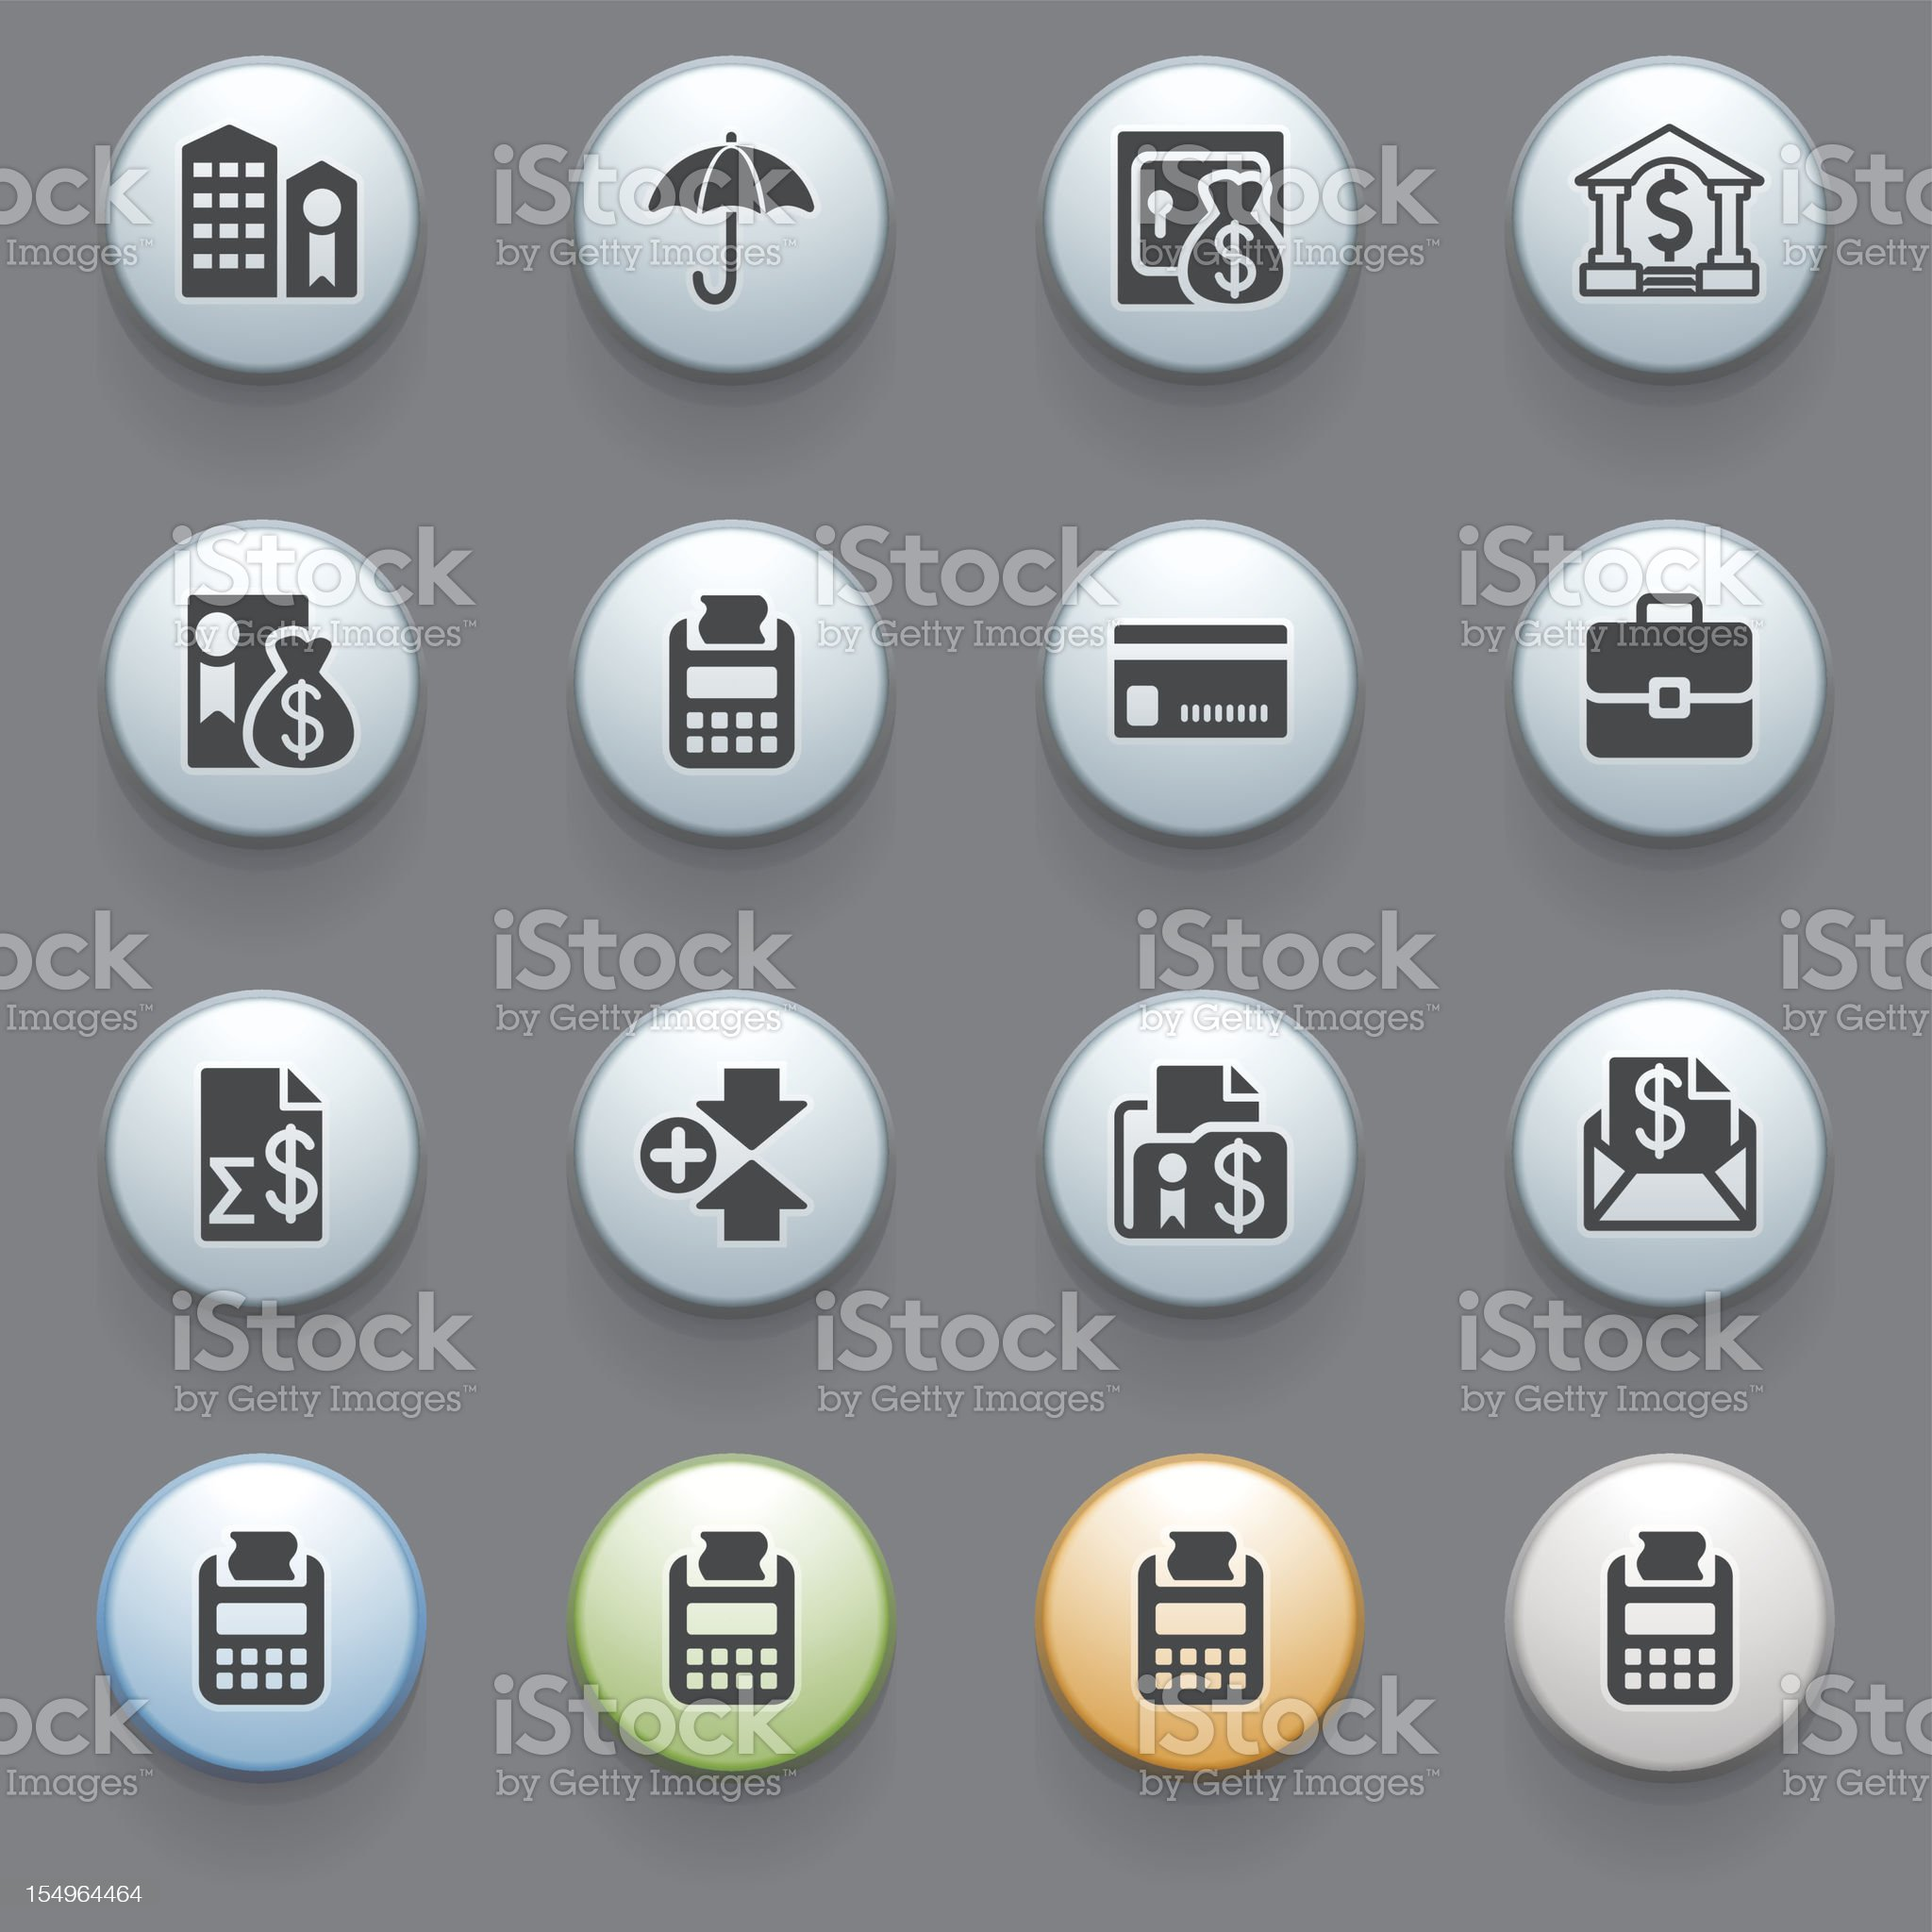 Banking icons with color buttons on gray background. royalty-free stock vector art